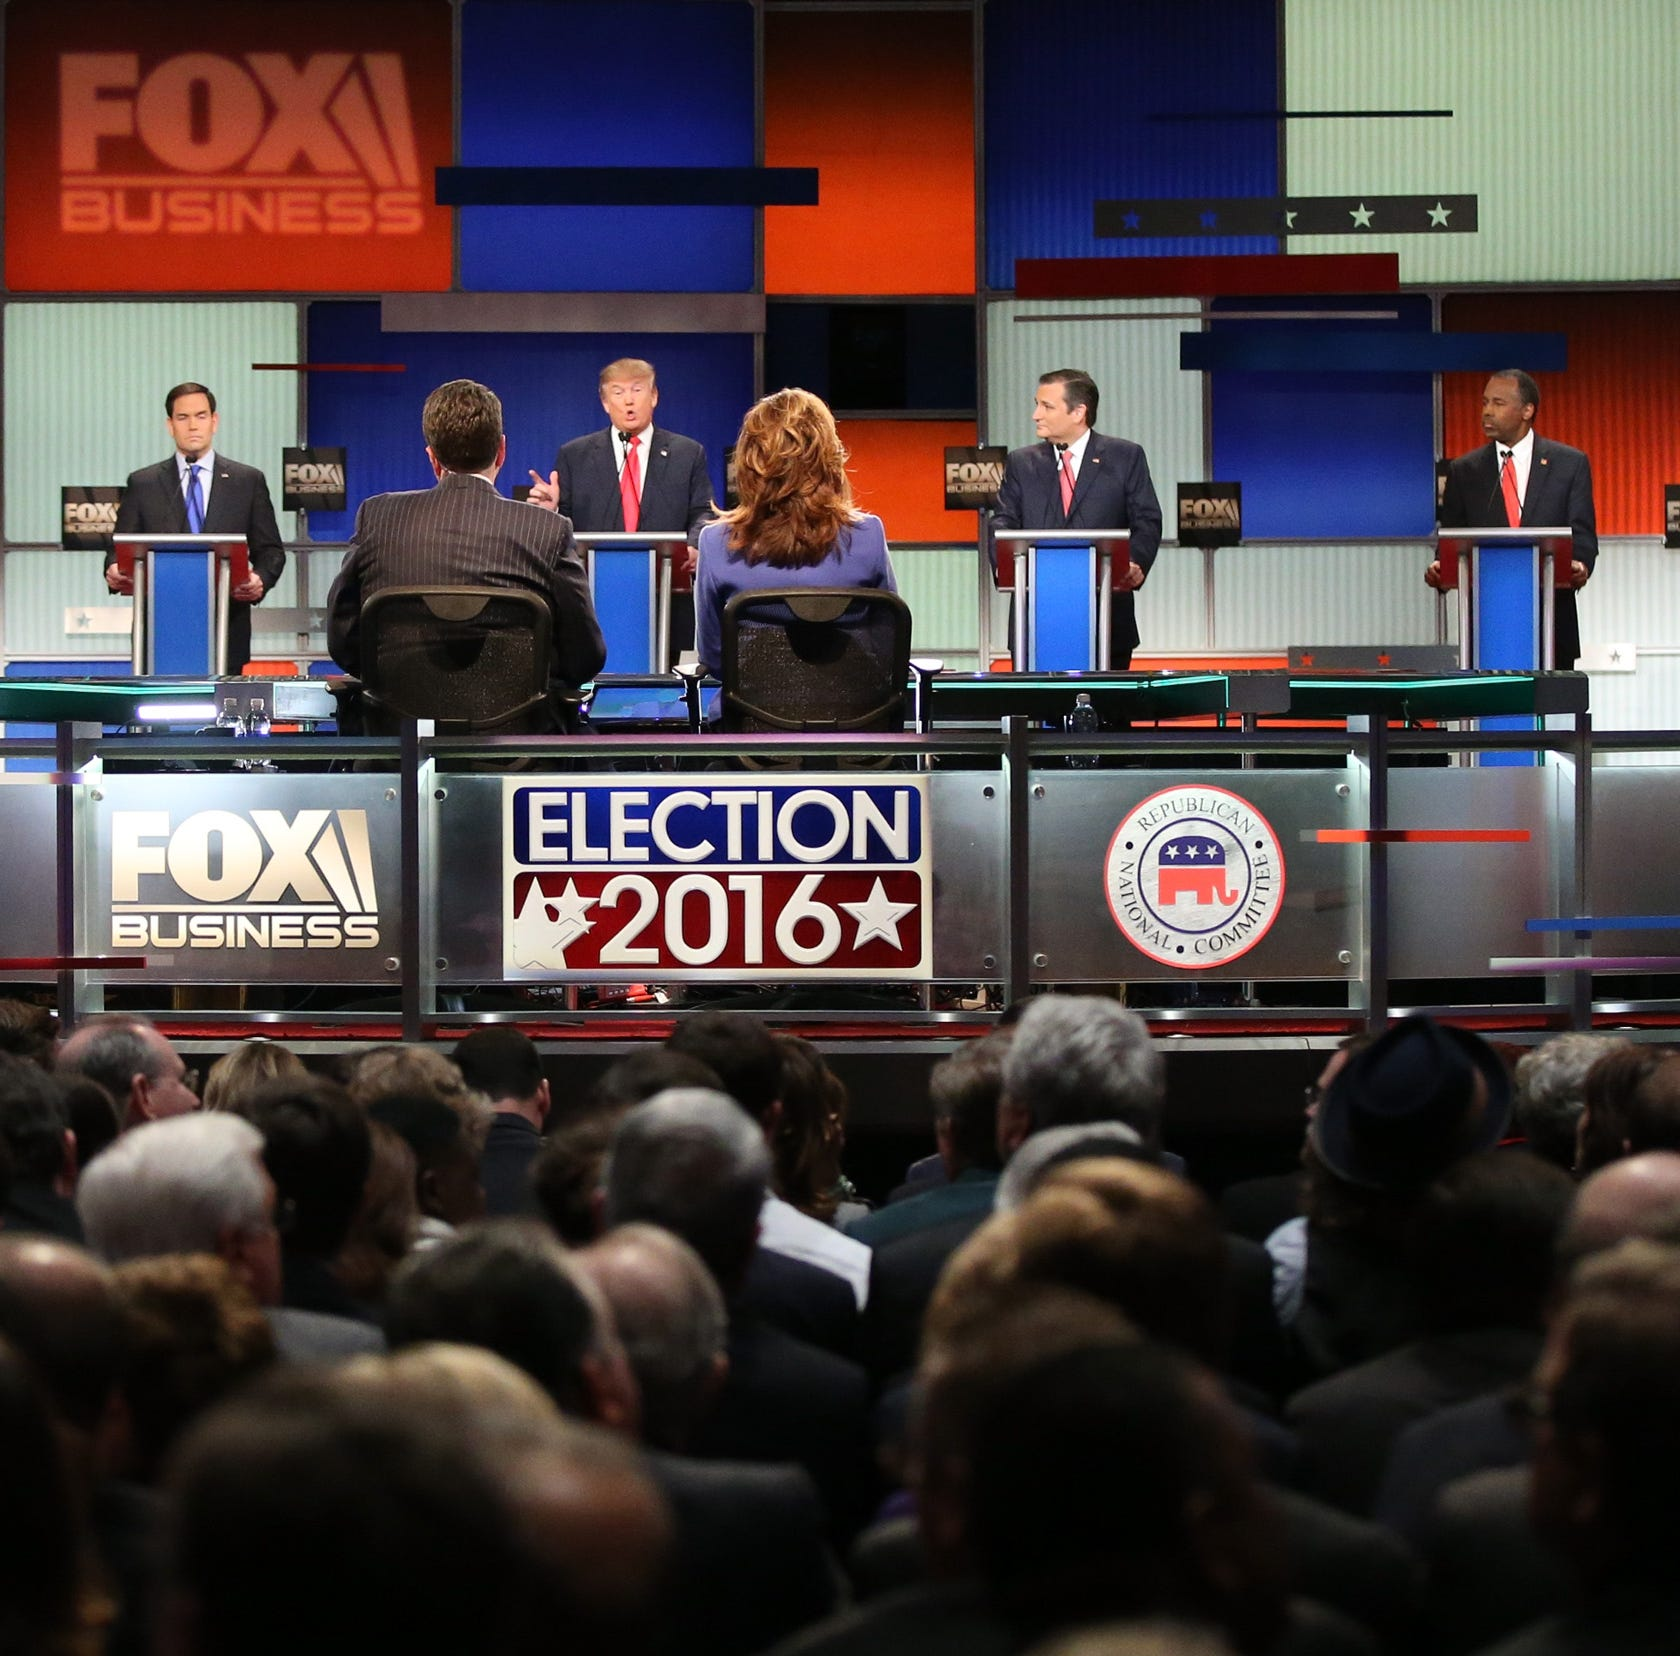 2020 Democrats should test their mettle in a Fox News debate instead of running scared